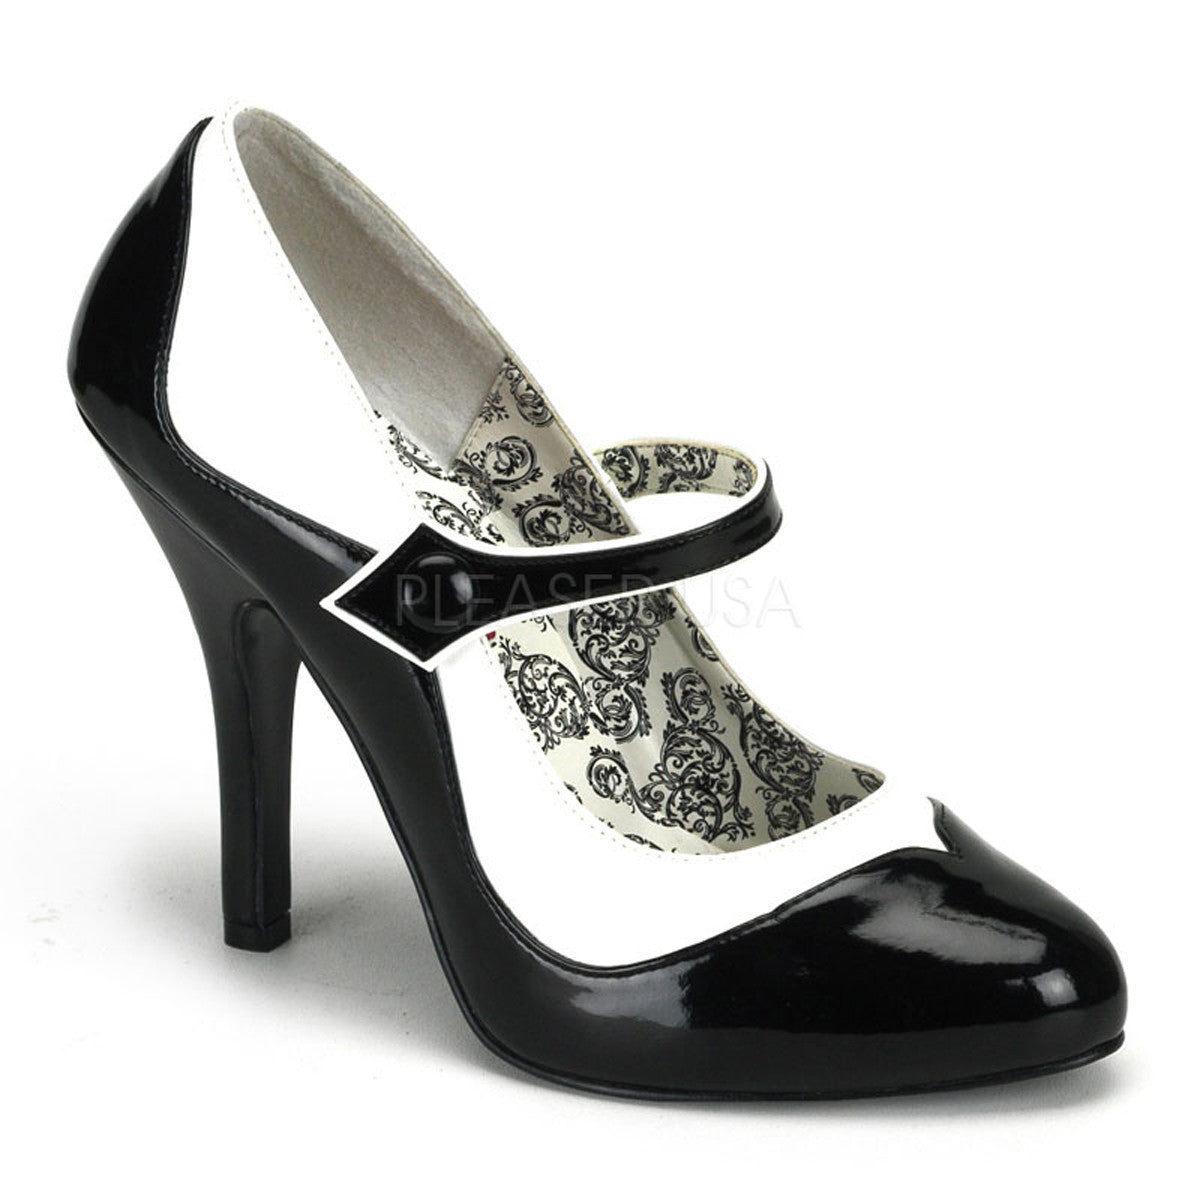 Bordello,Bordello TEMPT-07 Black-White Pu Pumps - Shoecup.com